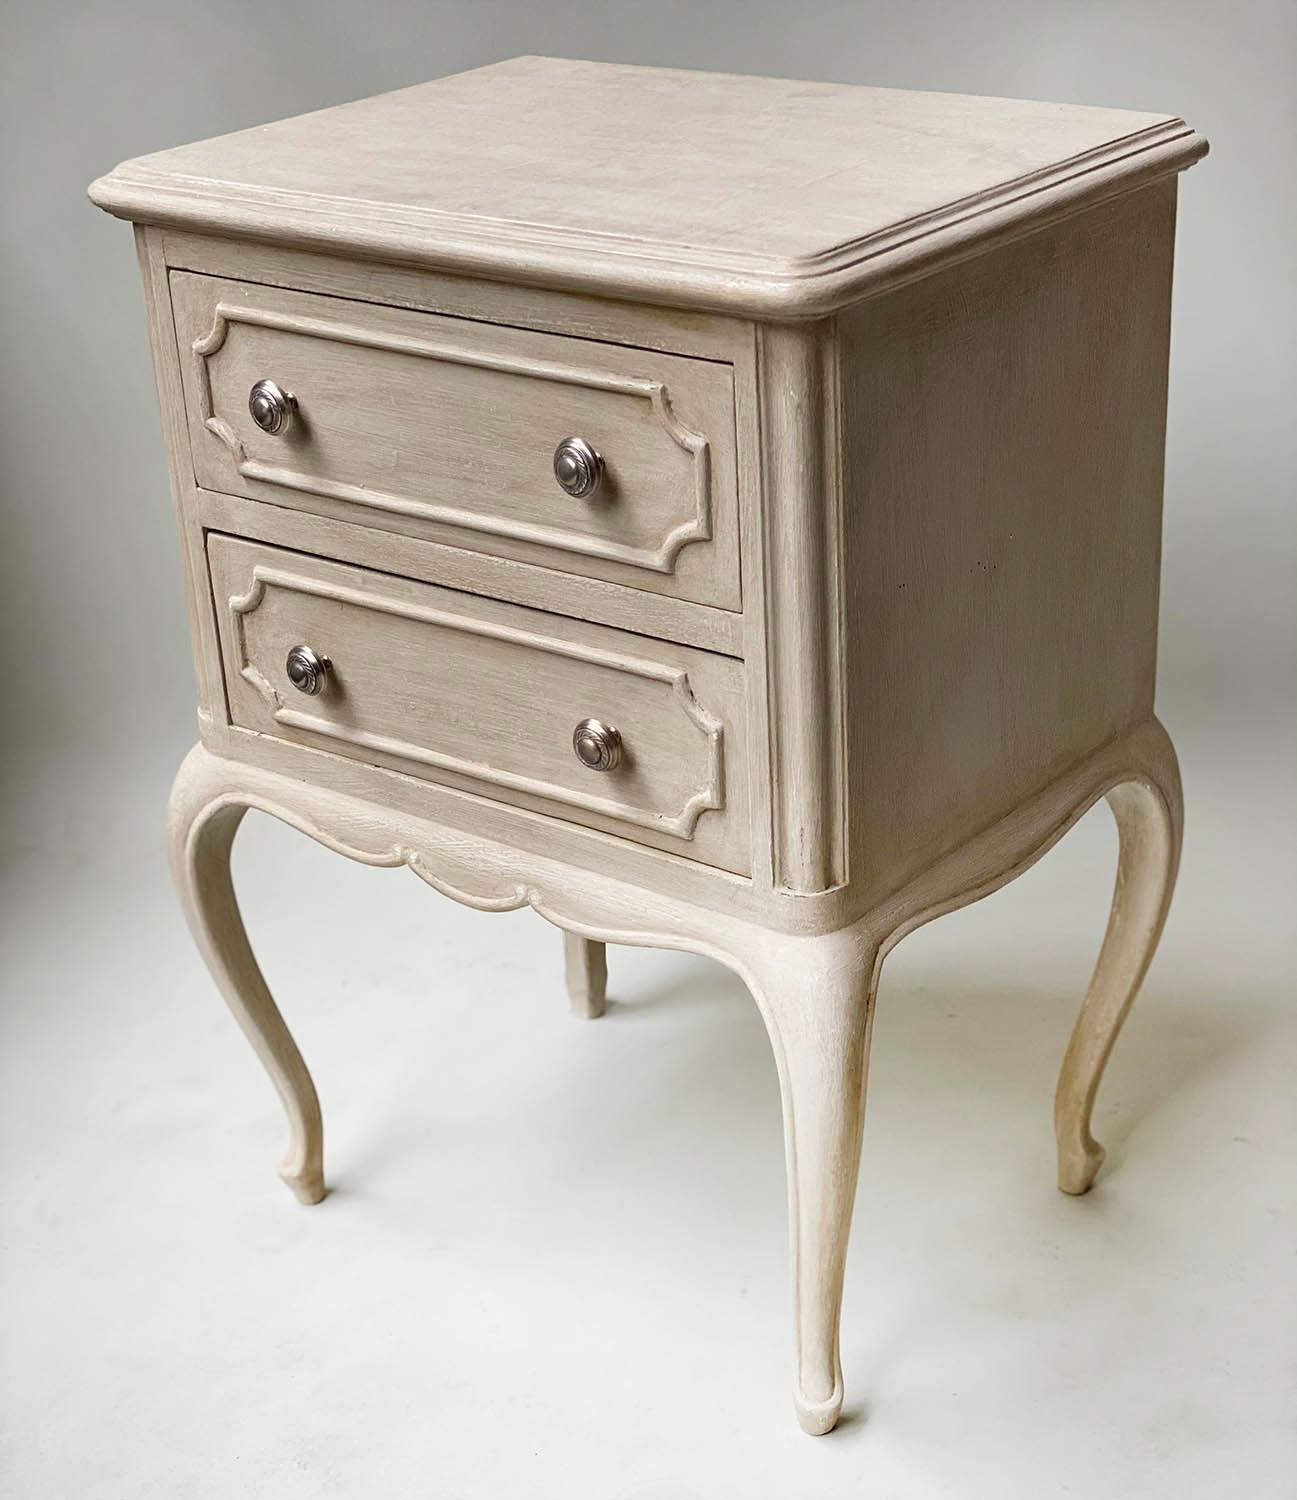 BEDSIDE CHESTS, a pair, French Louis XV design grey painted each with two drawers, 48cm x 36cm x - Image 2 of 5